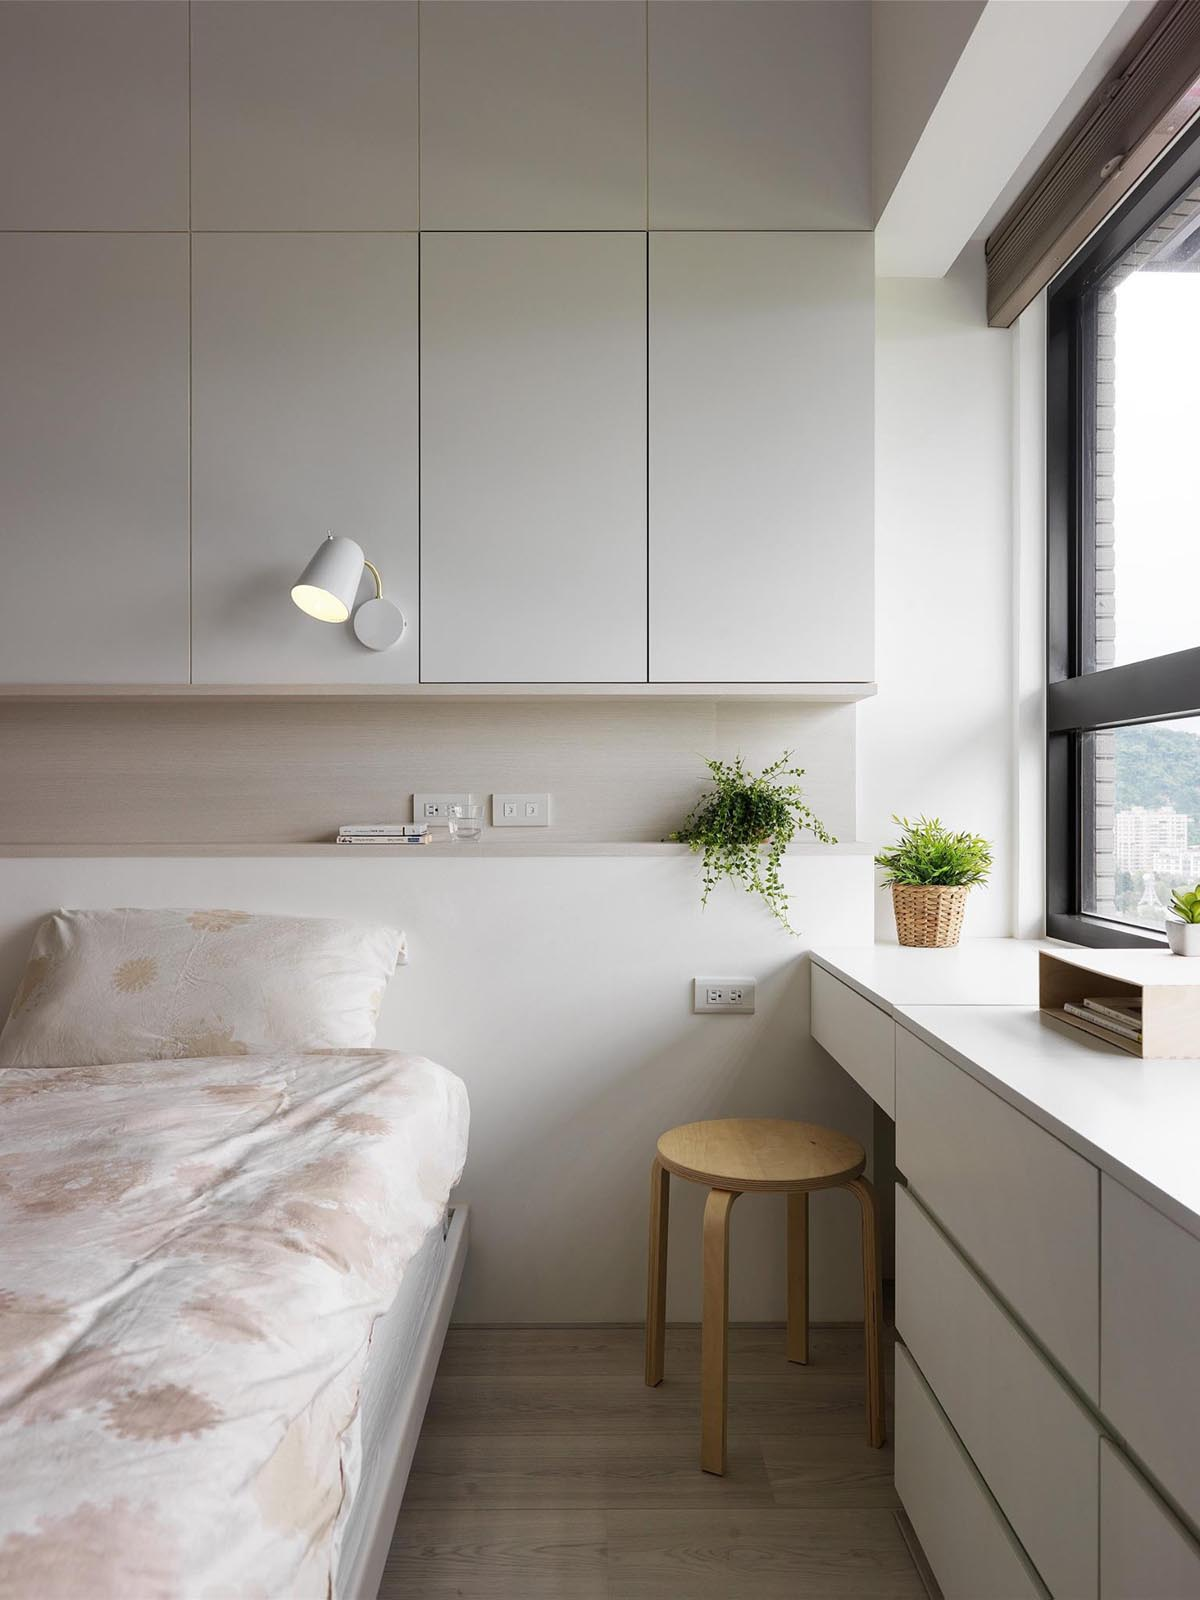 Completely White Apartment With Dominant Central Home Office images 22